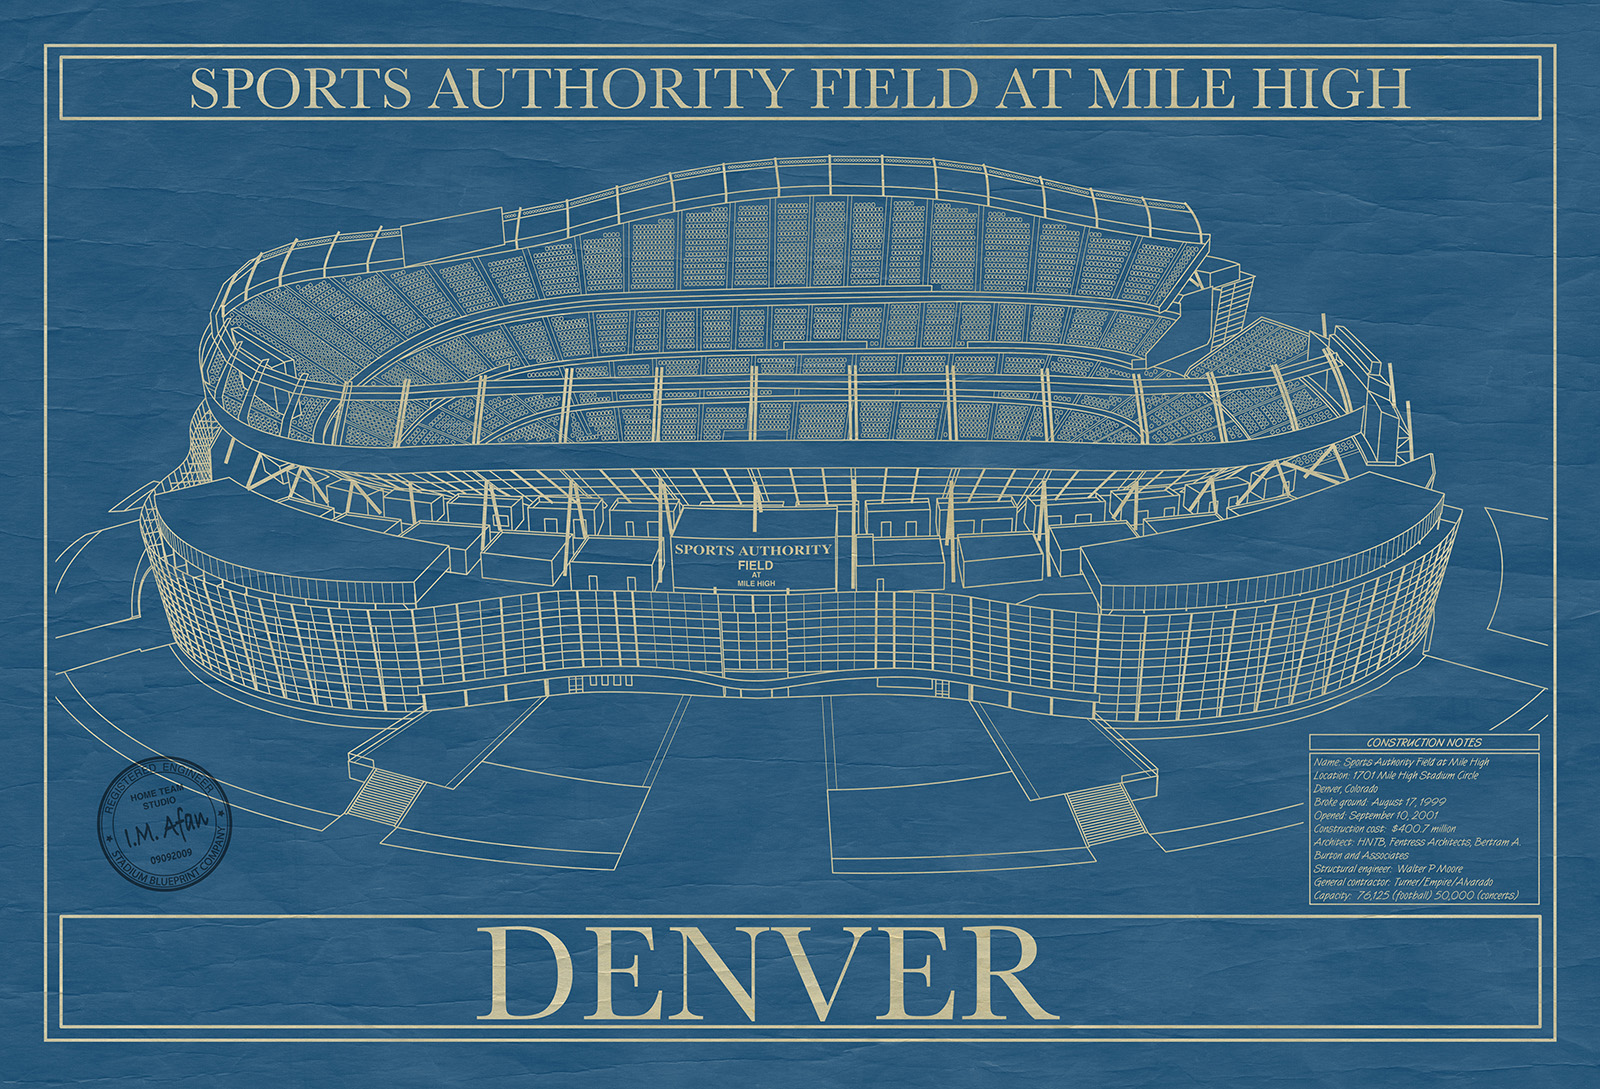 Denver sports authority field at mile high stadium blueprint company click to enlarge malvernweather Images